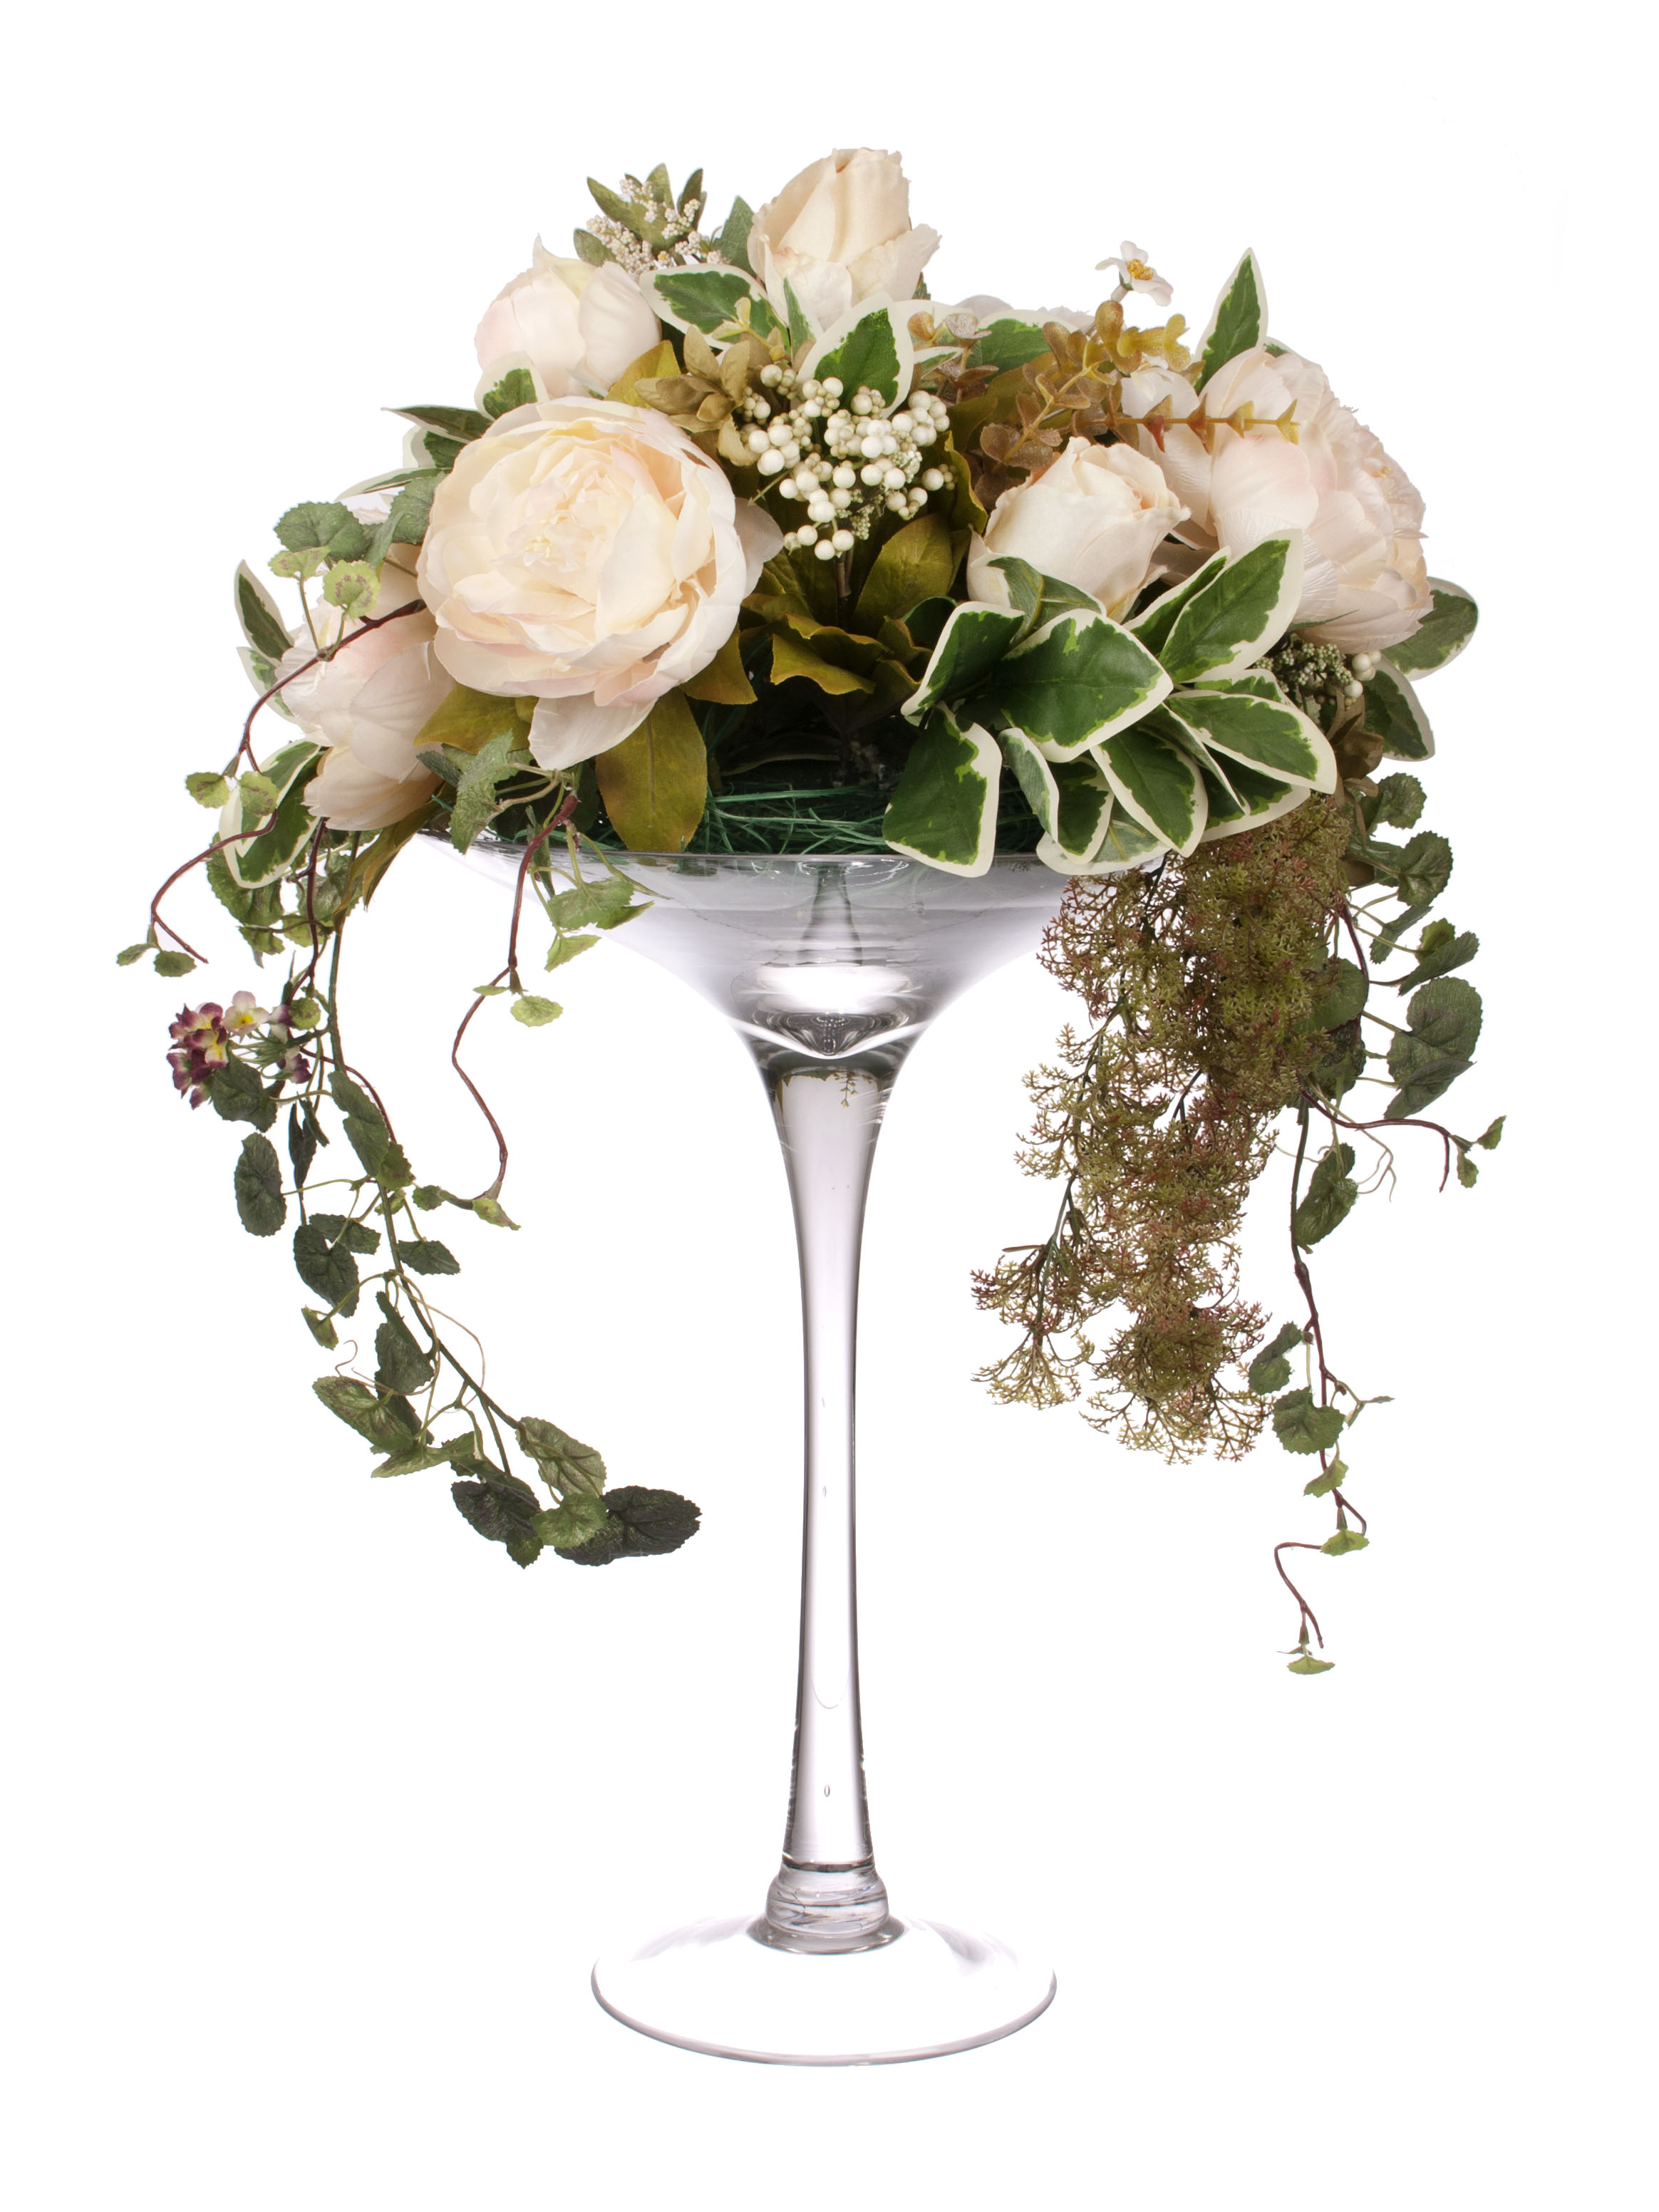 View large Artificial 55cm Blush Pink Rose and Peony Arrangement - Artificial Silk Floral Arrangement and Display Range UK